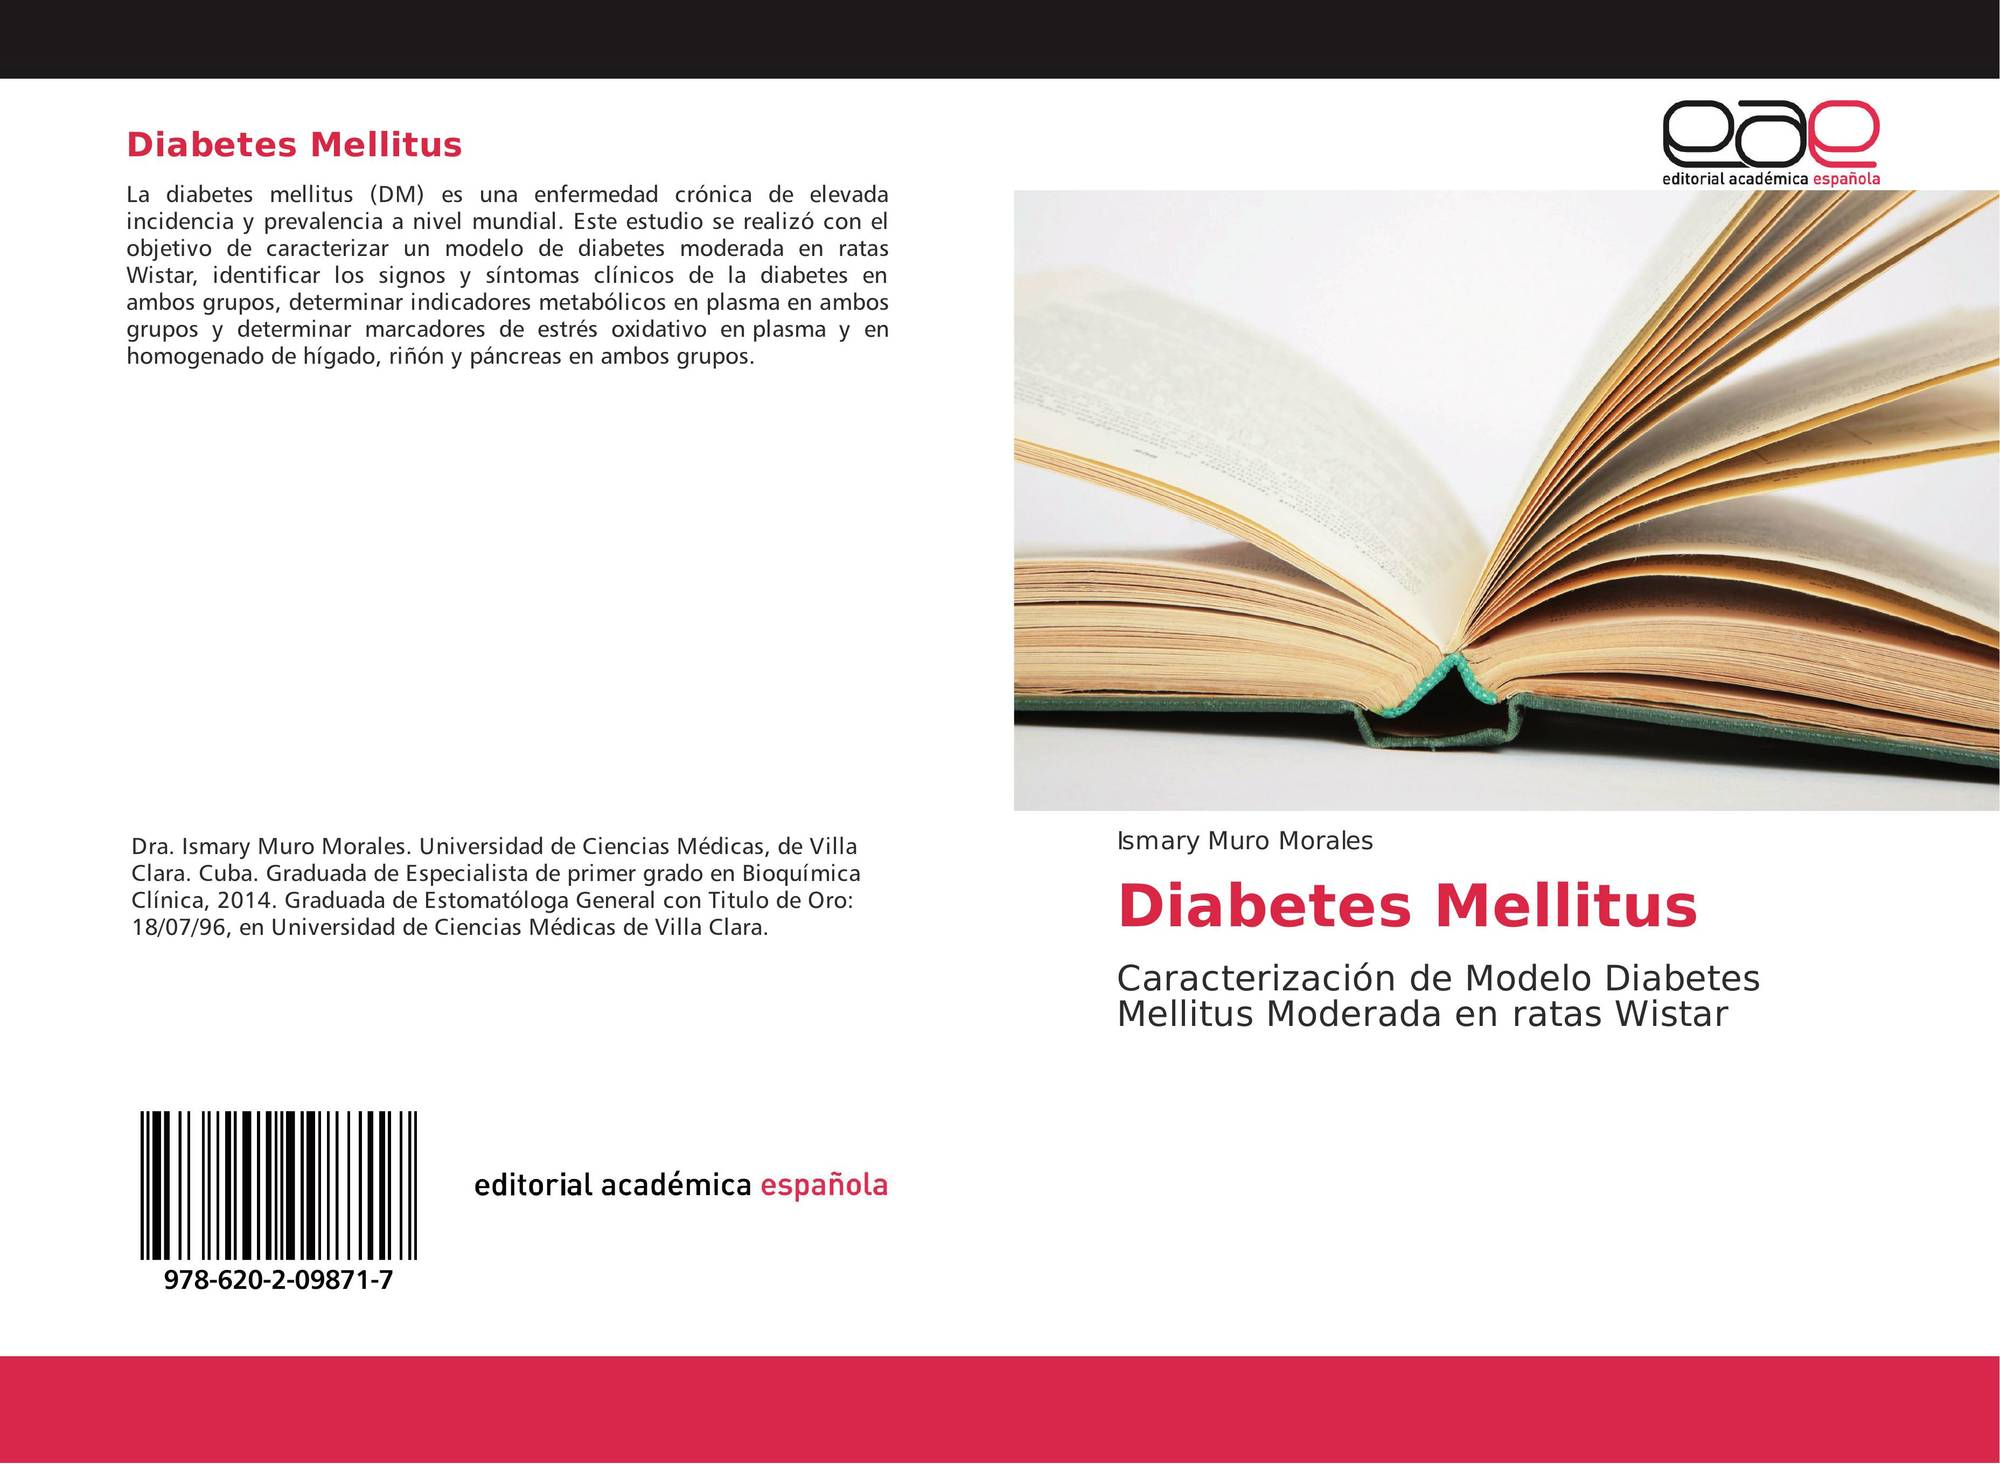 eztrade signos de diabetes